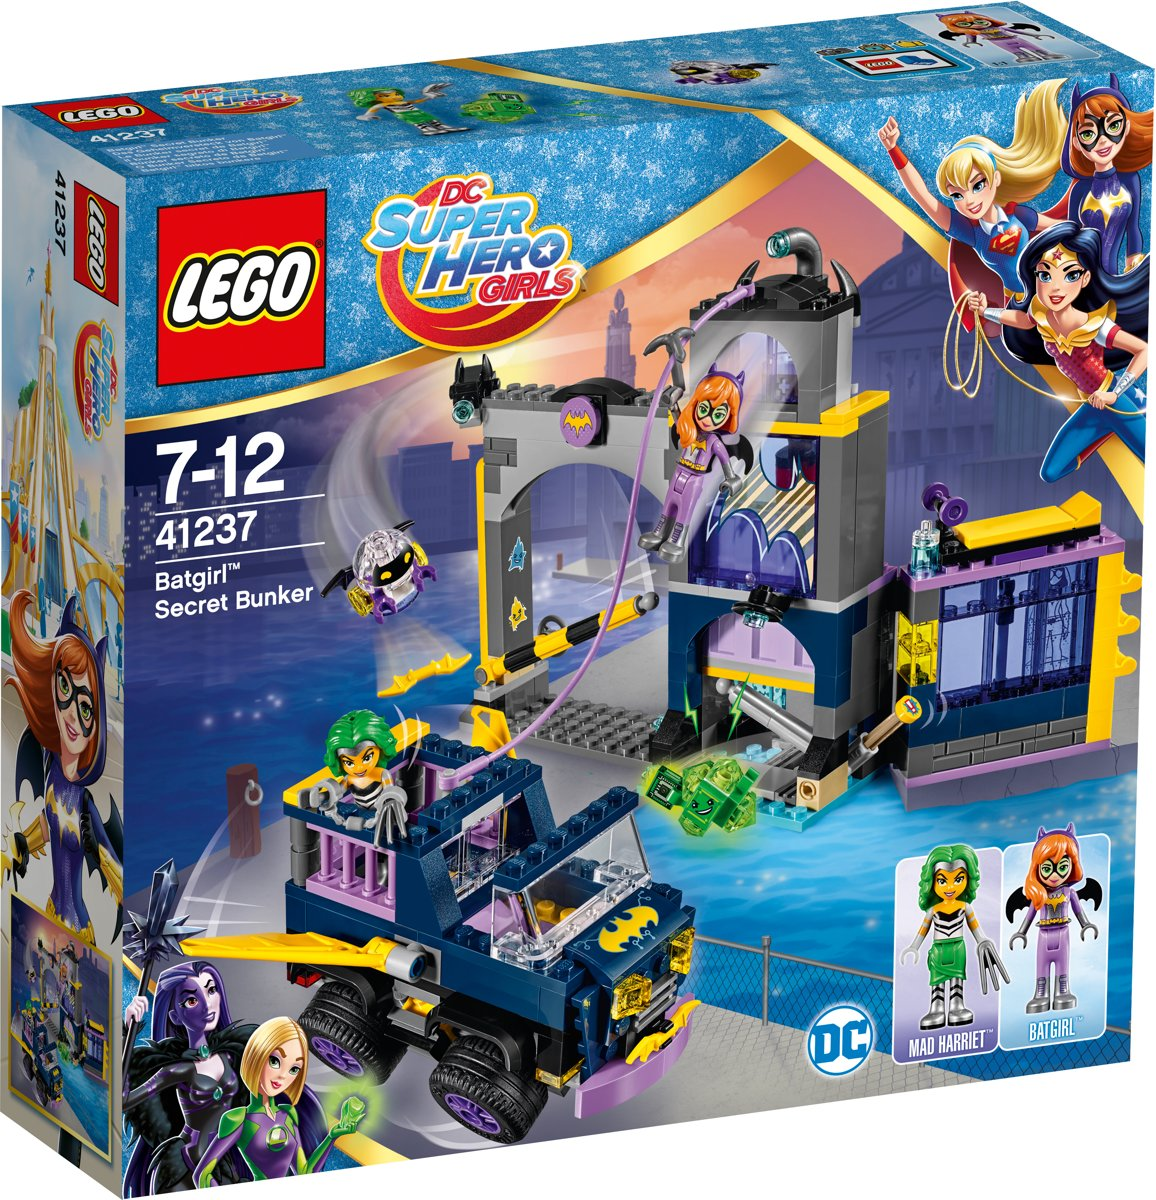 LEGO DC Super Hero Girls Batgirl Geheime Bunker - 41237